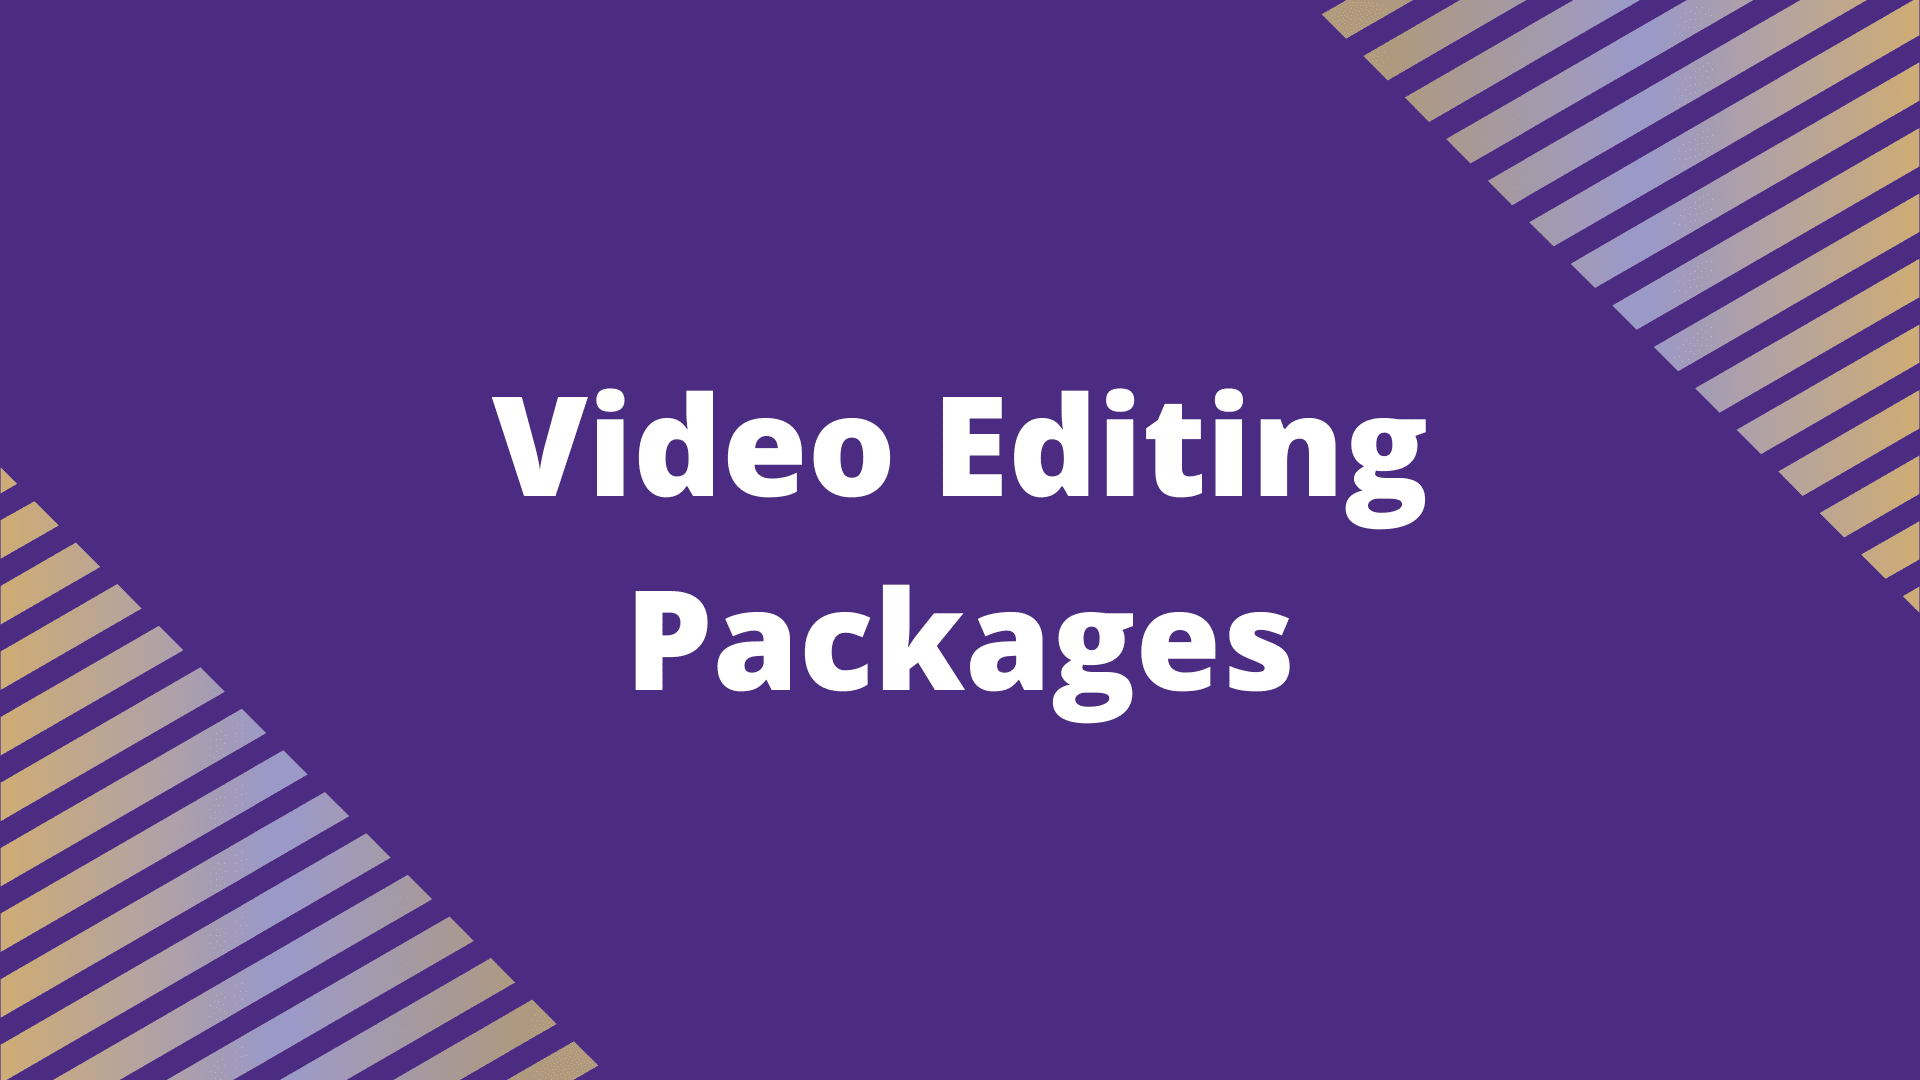 Video Editing Packages, Business, Business Assistance, Entrepreneur, Event, Events,  Online Programs, Online support, Podcast, PowerPoint, PowerPoint Presentation, PowerPoint Slides, Presentation, Presentations, Program, Programs, Promotional Videos, Resources, Rose Davidson, Small Business, Small Business Owner, Social Media, Speaker, Speakers, Support, Video, Video Editing, Vodcast, Workshop, Workshops